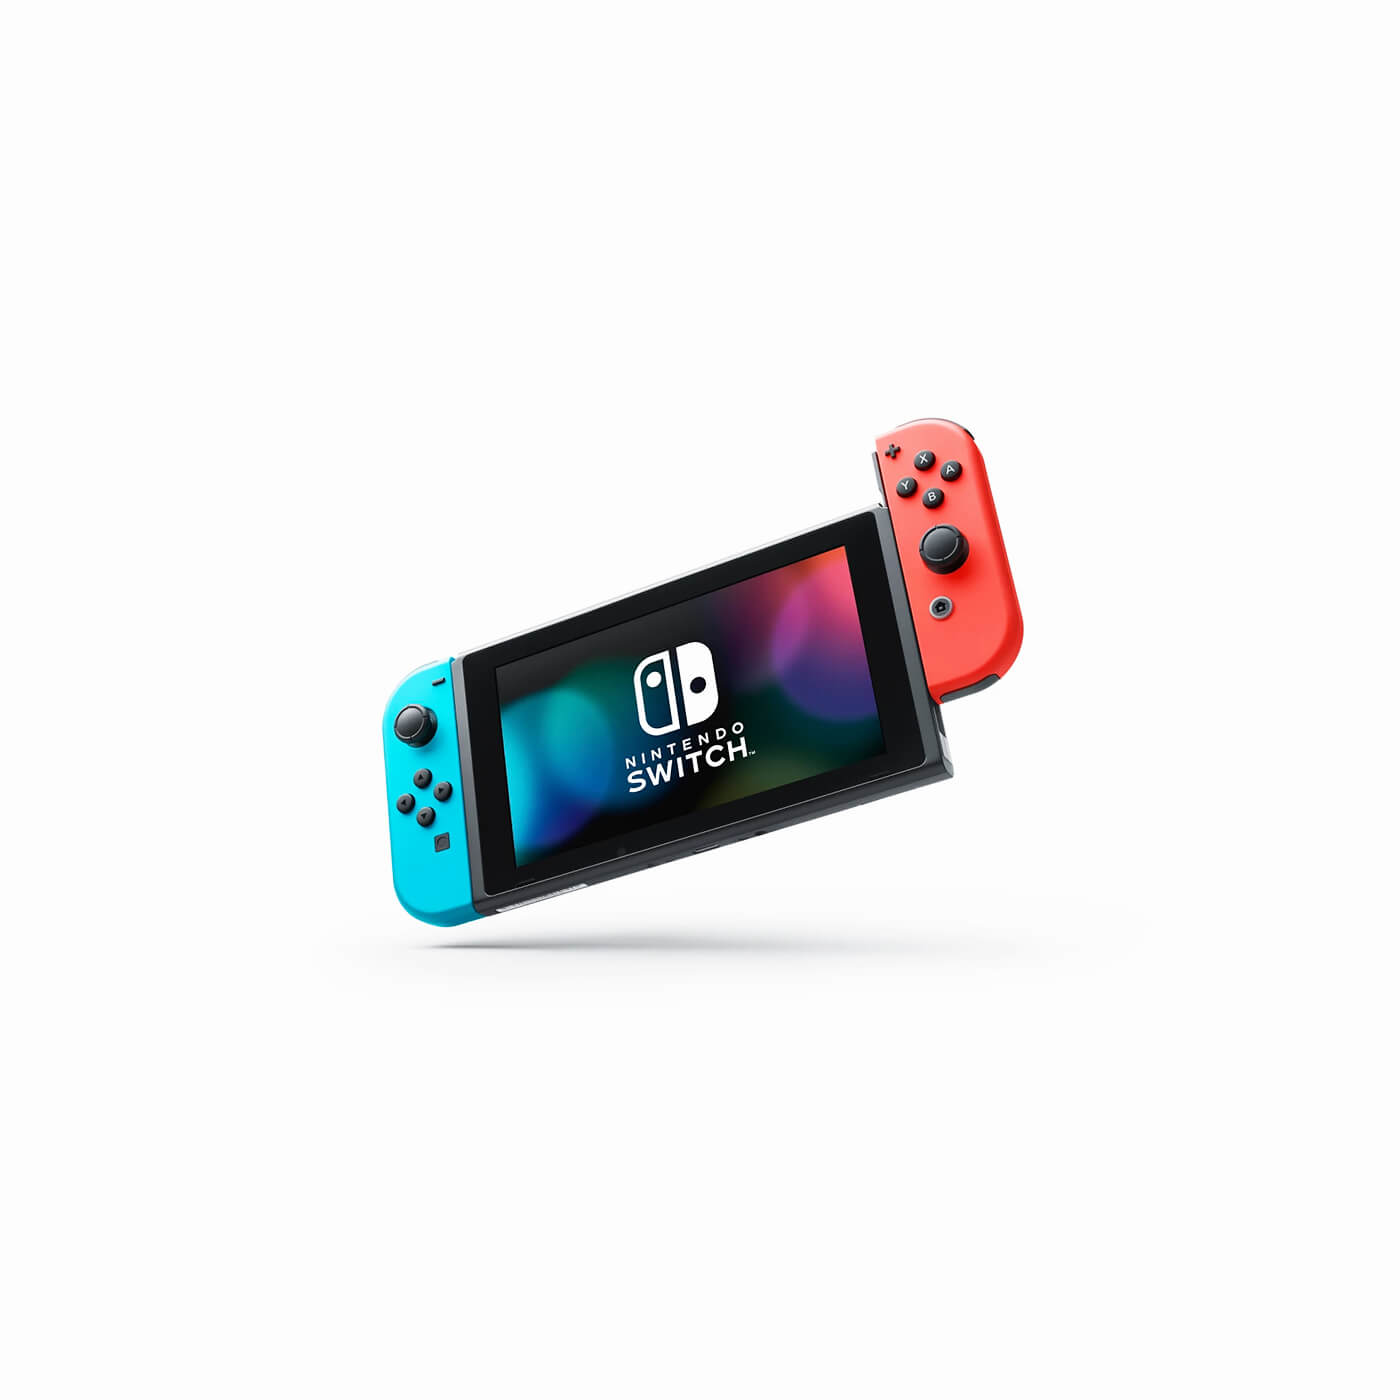 01.Nintendo Switch with Neon Blue and Neon Red Joy